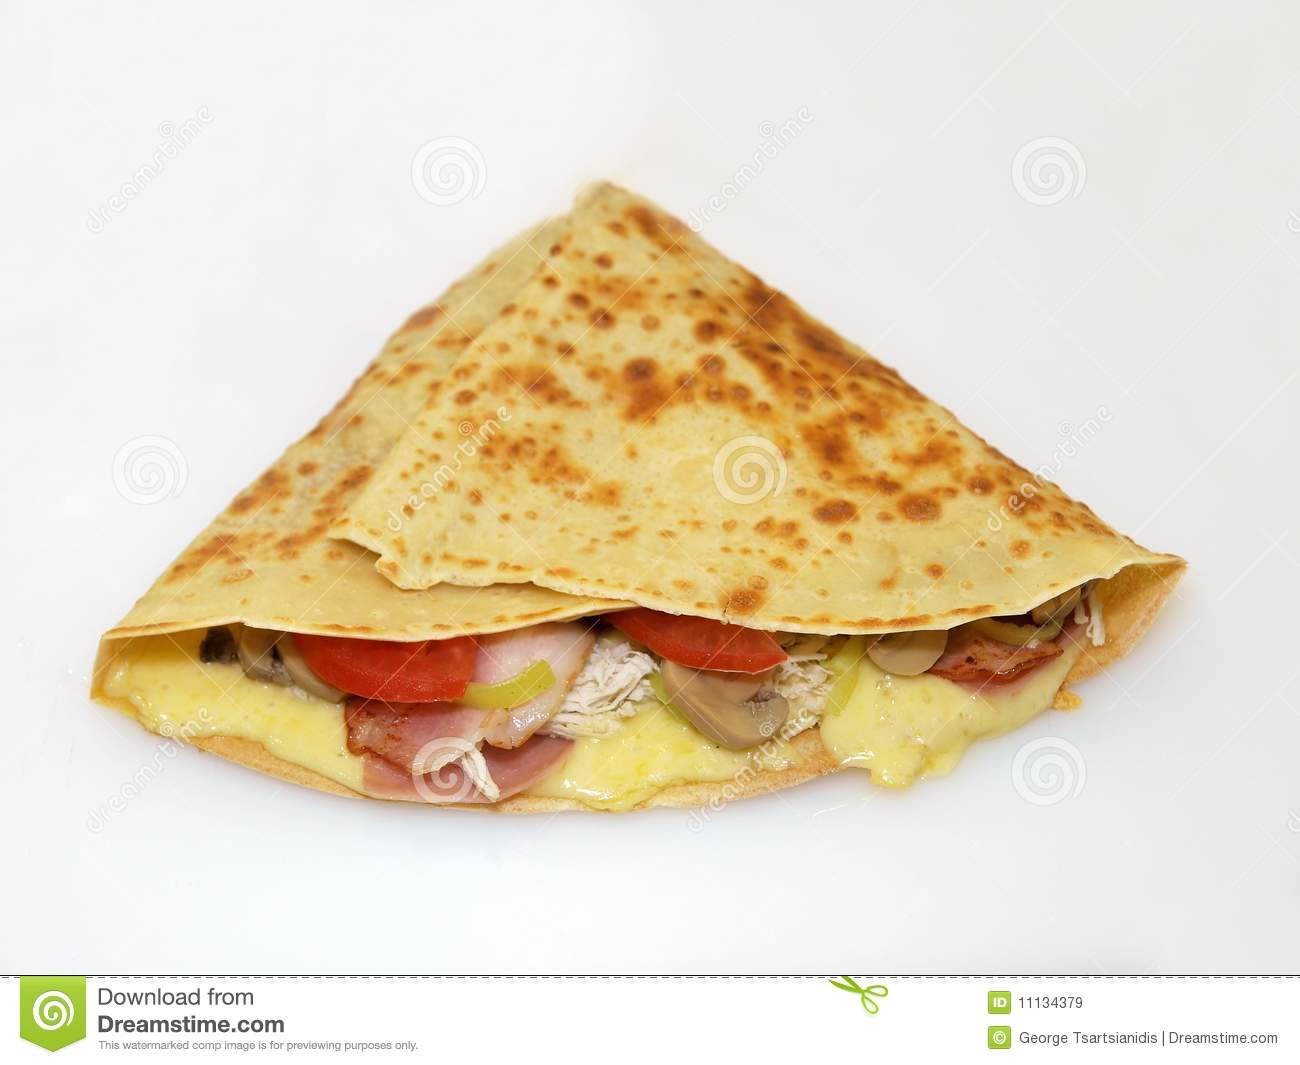 Crepe with filling